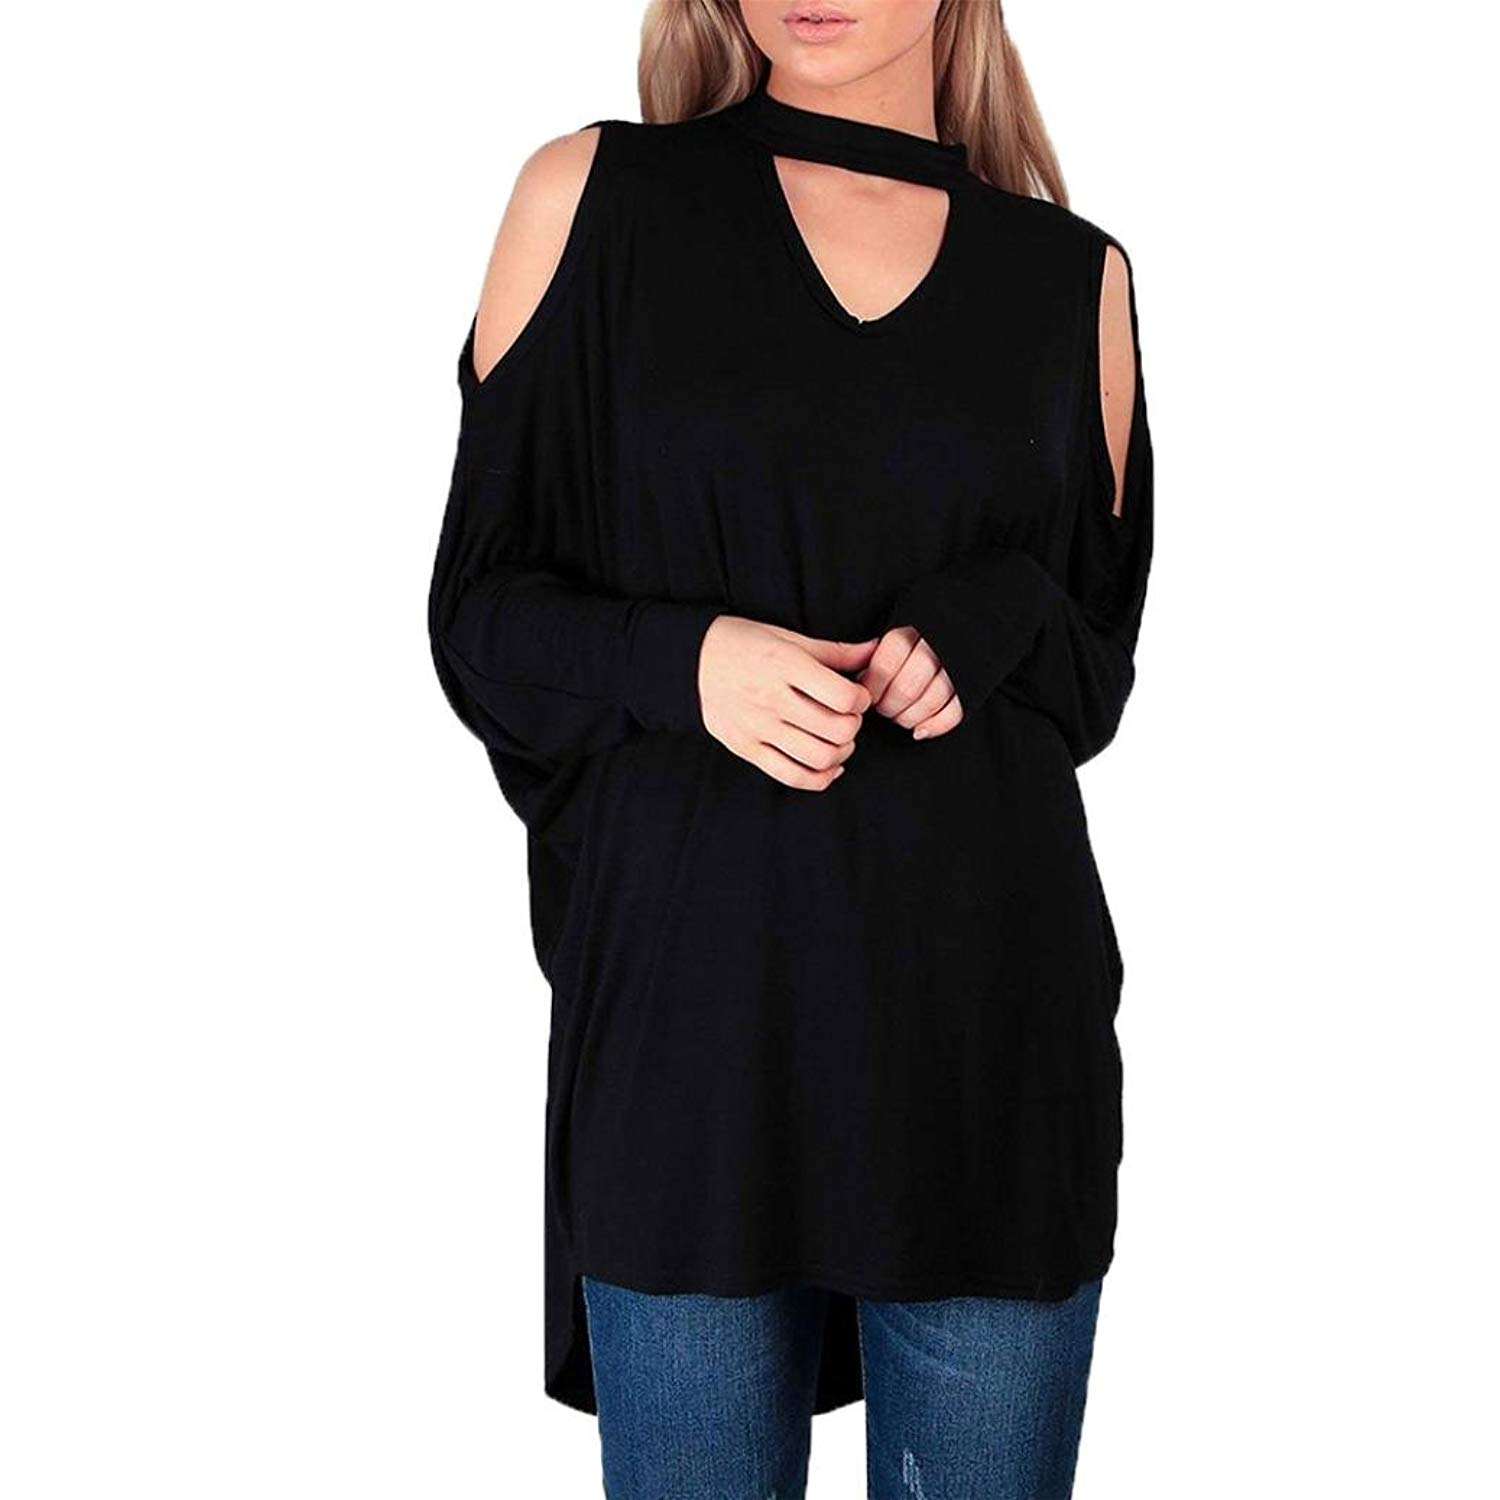 MOONHOUSE Womens Lagen Look Cold Cut Shoulder Baggy Tops Choker Neck Sexy Shirts Loose Long Sleeve Pullover Blouse Plus Size